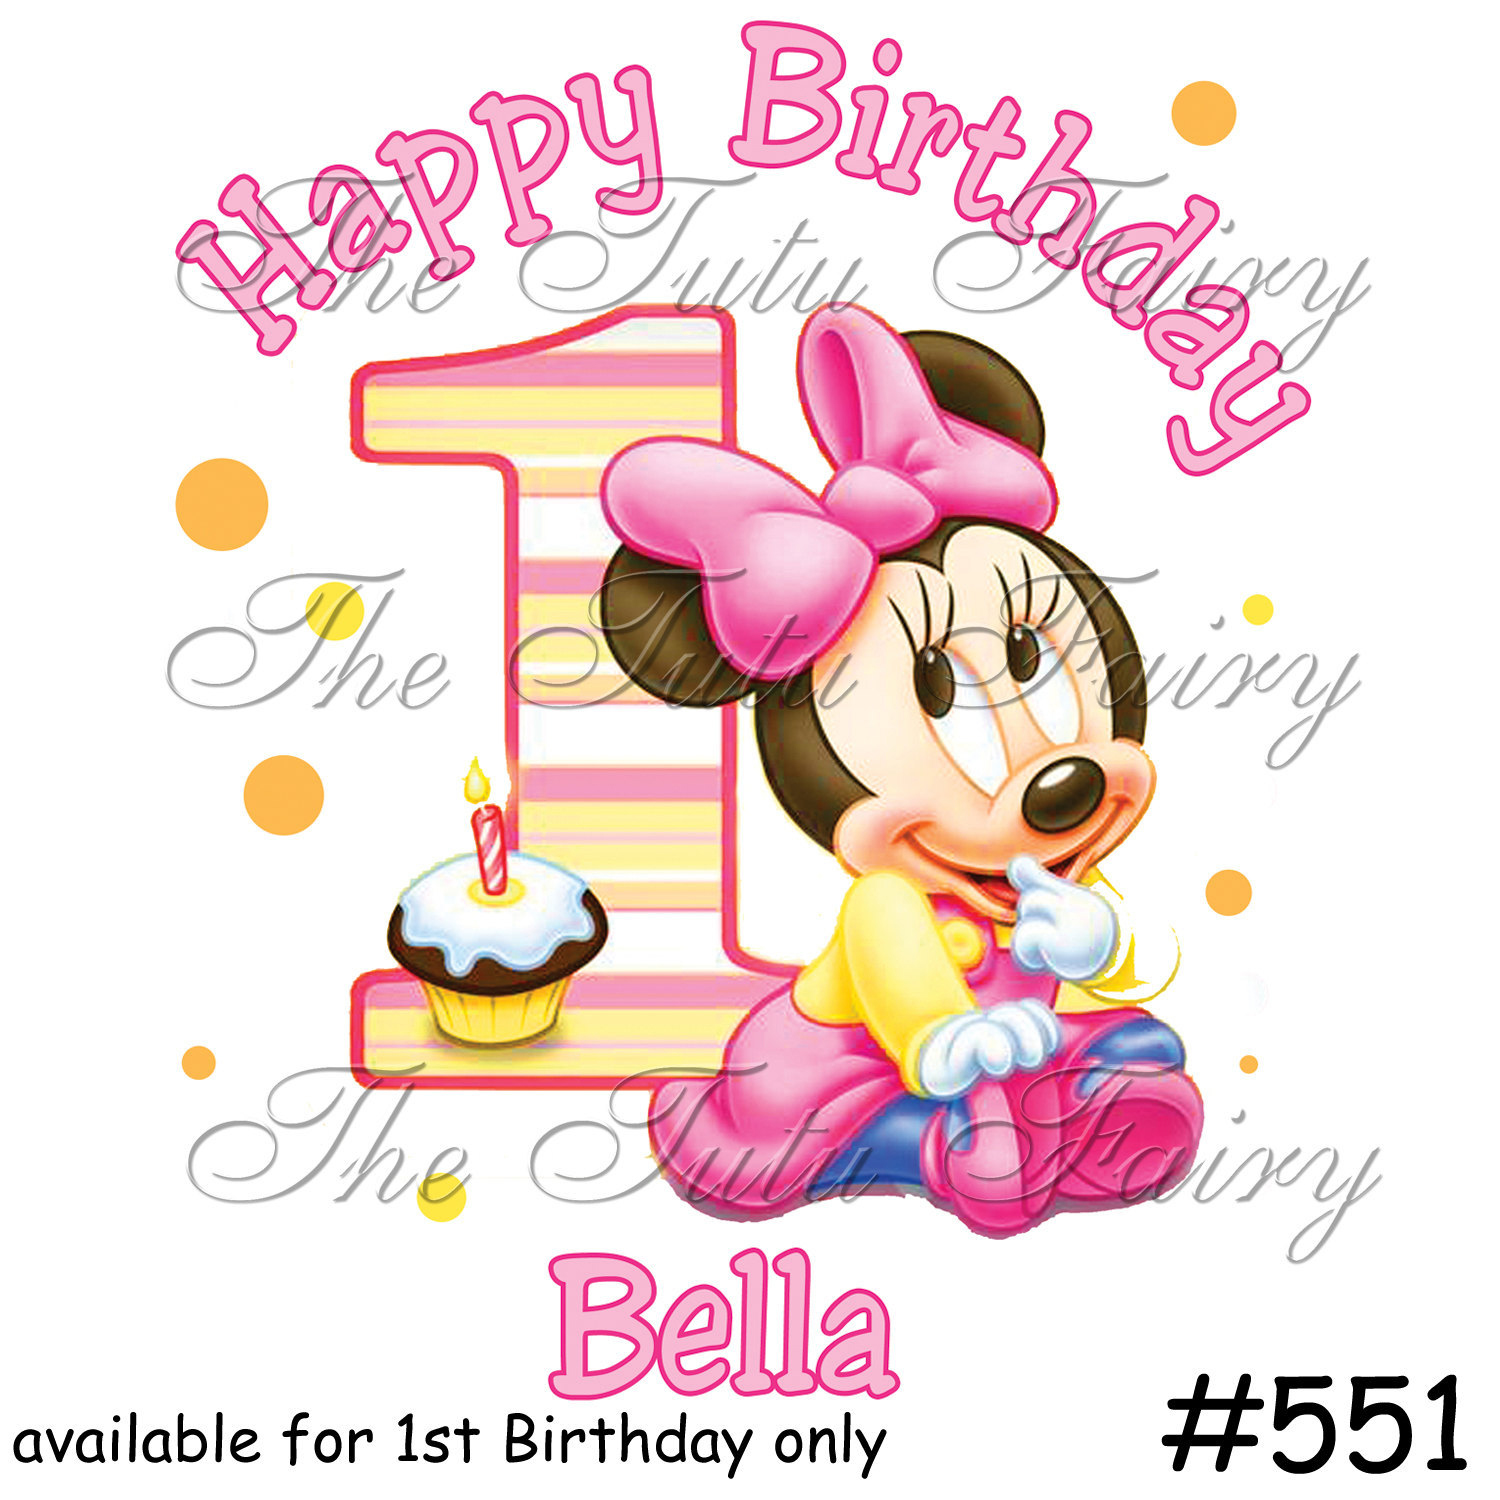 1 Year Baby Birthday Invitation Quotes: Minnie Mouse Birthday Quotes. QuotesGram